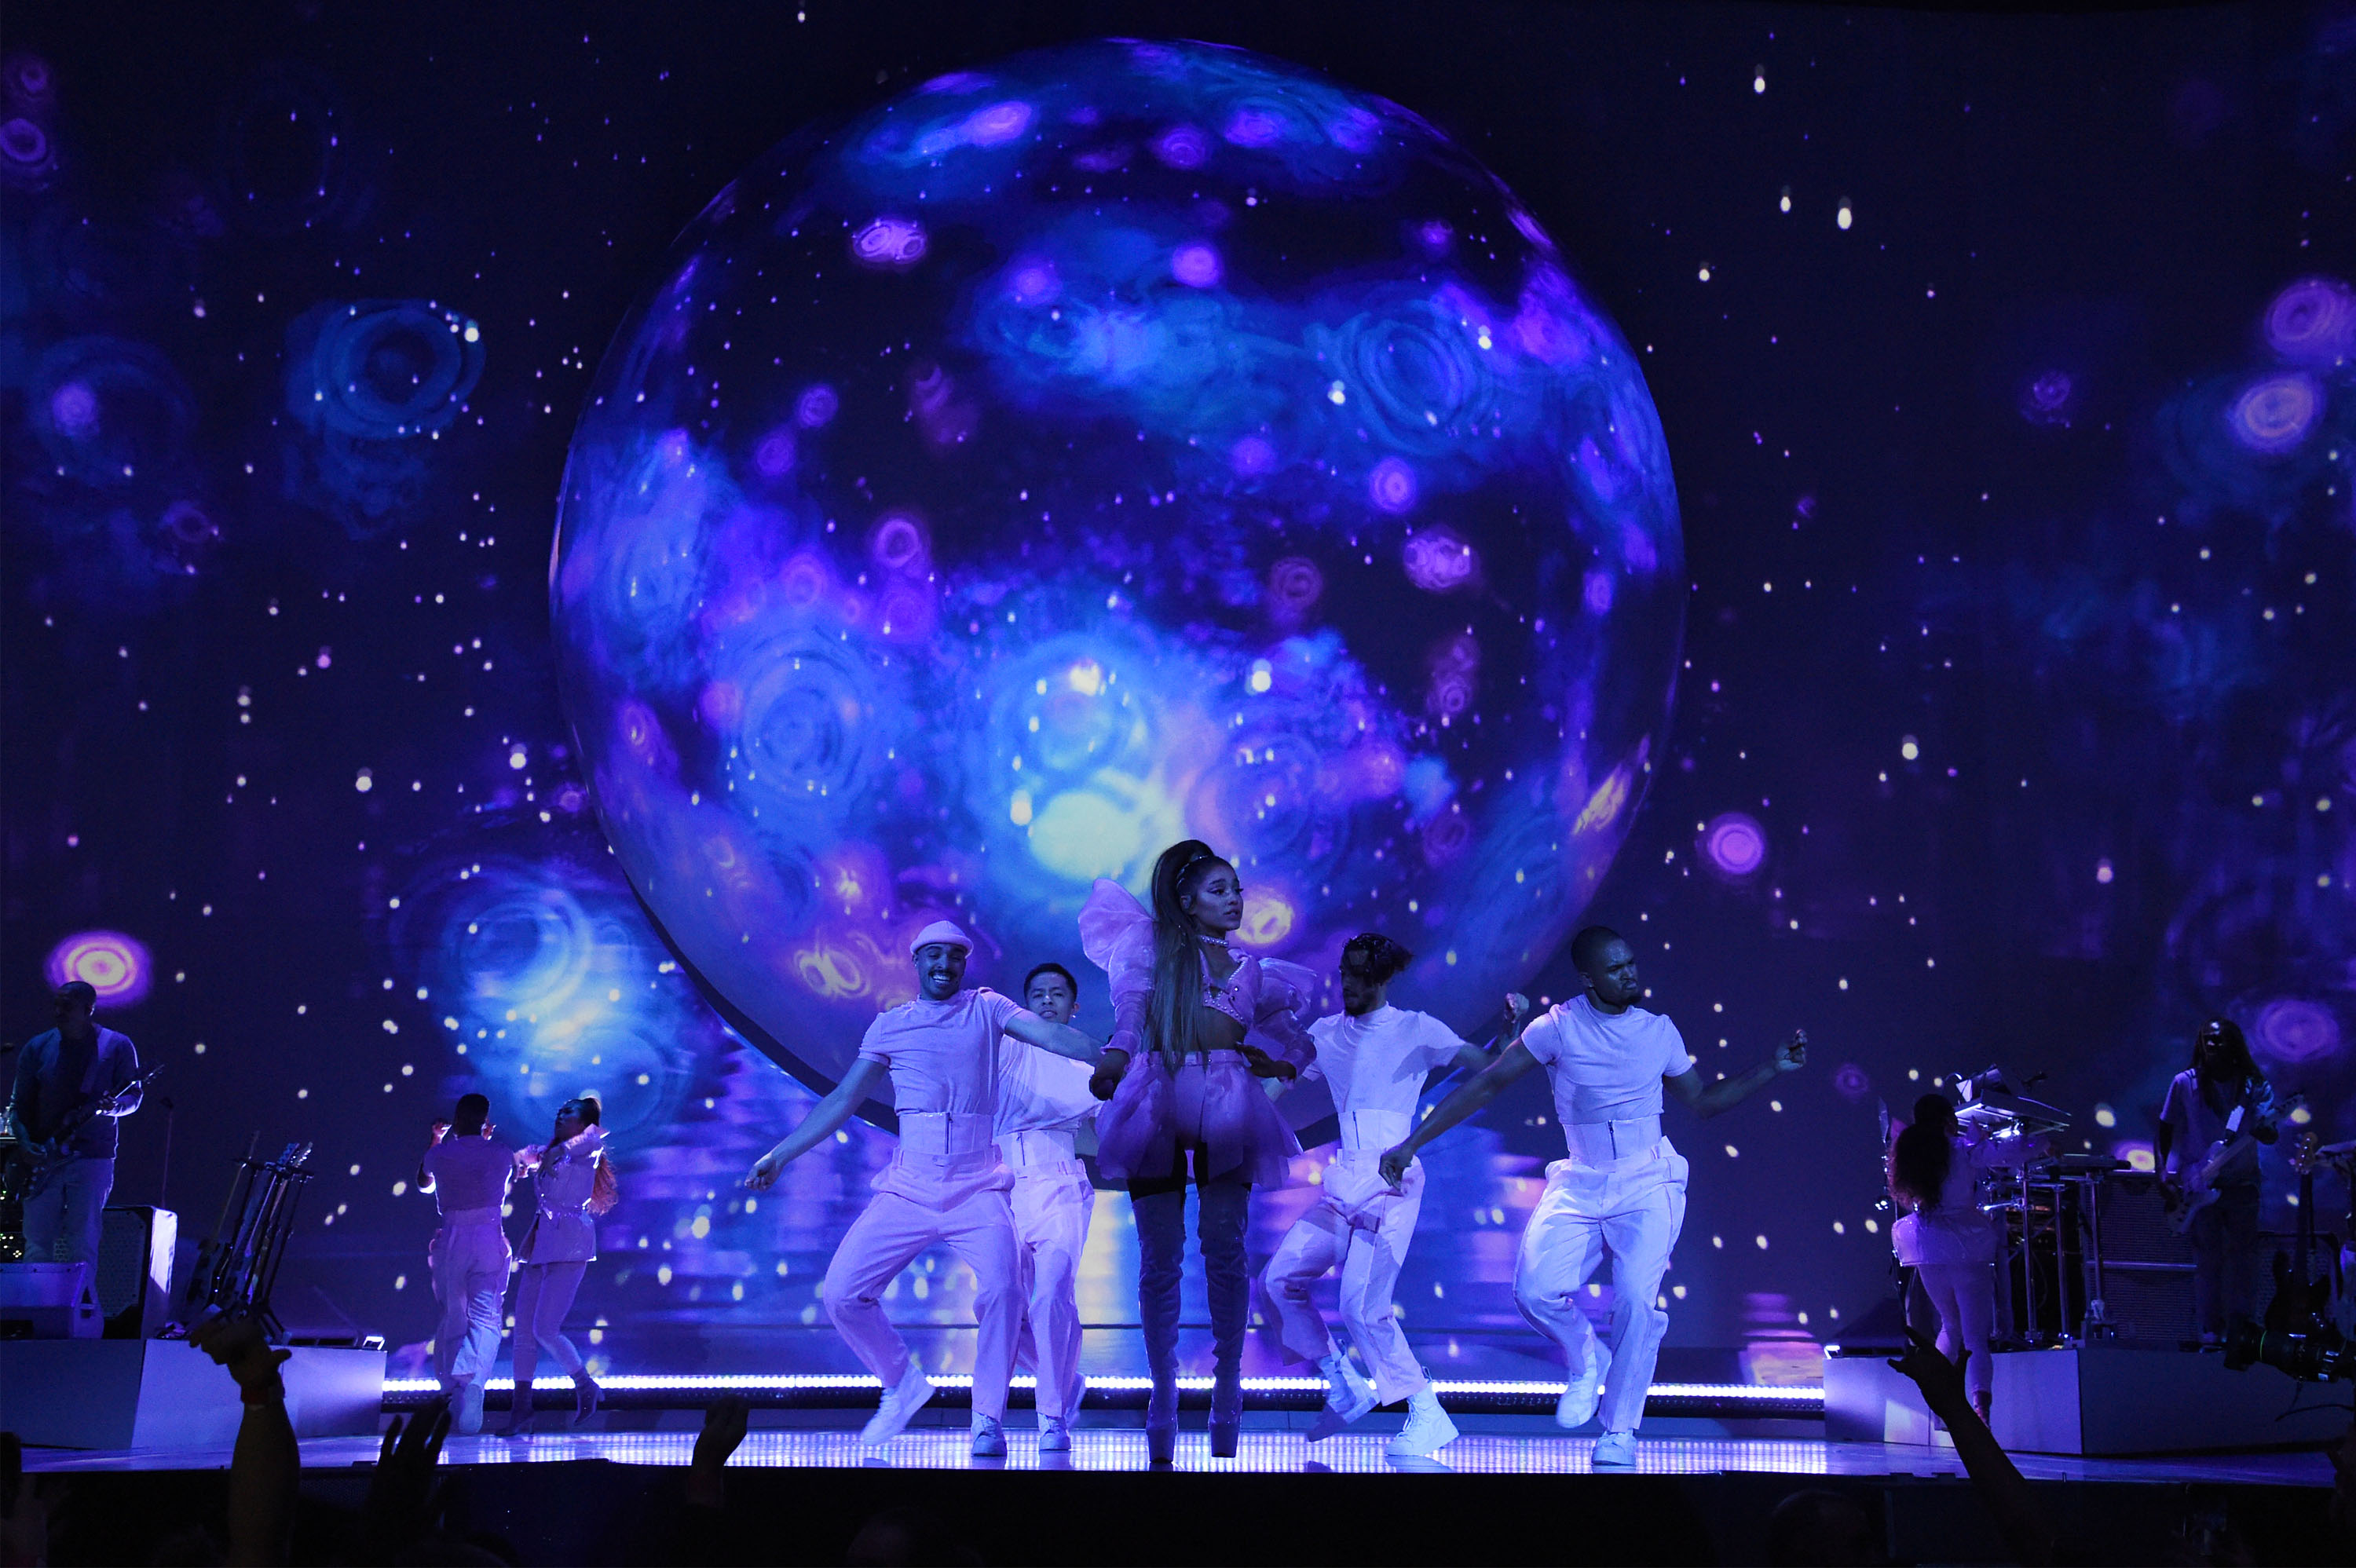 Disguise Solutions Power Innovative Video For Ariana Grande S Sweetener World Tour Nab Show News 2020 Nab Show Media Partner And Producer Of Nab Show Live Broadcast Engineering News